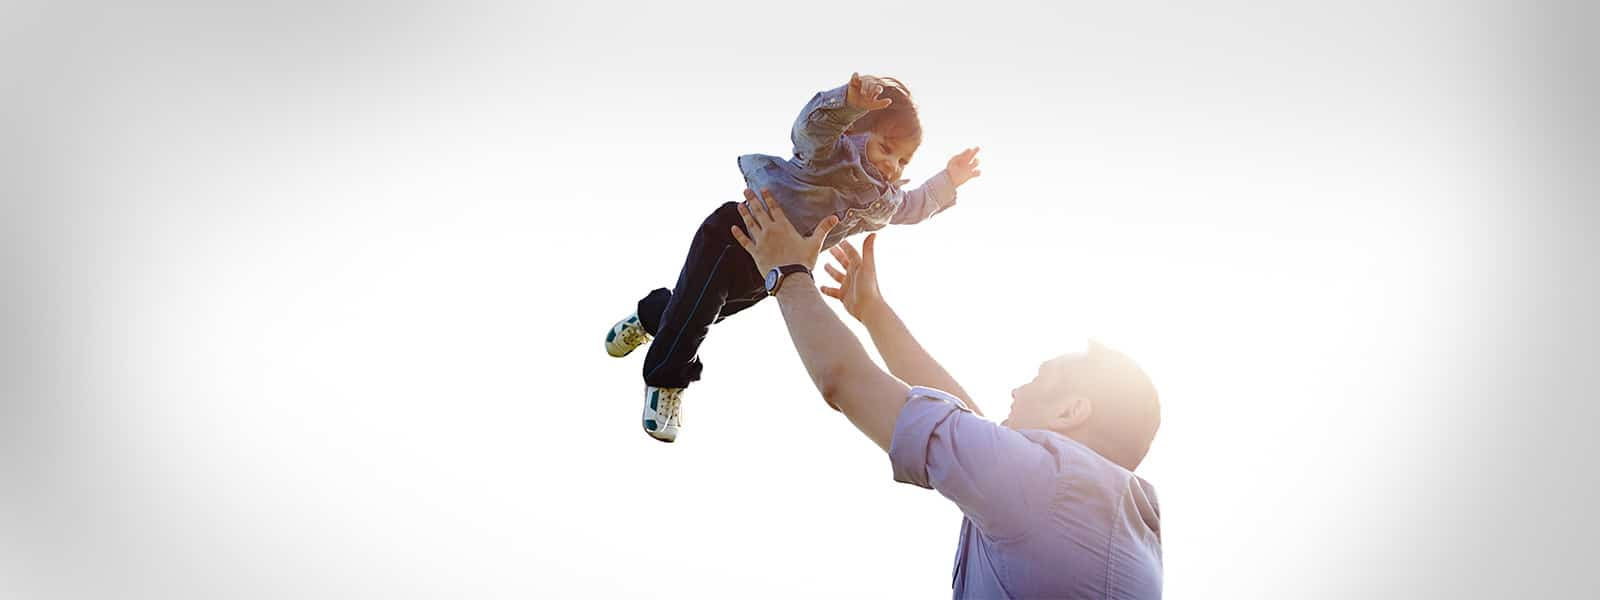 man playing with his child and throwing him in the air